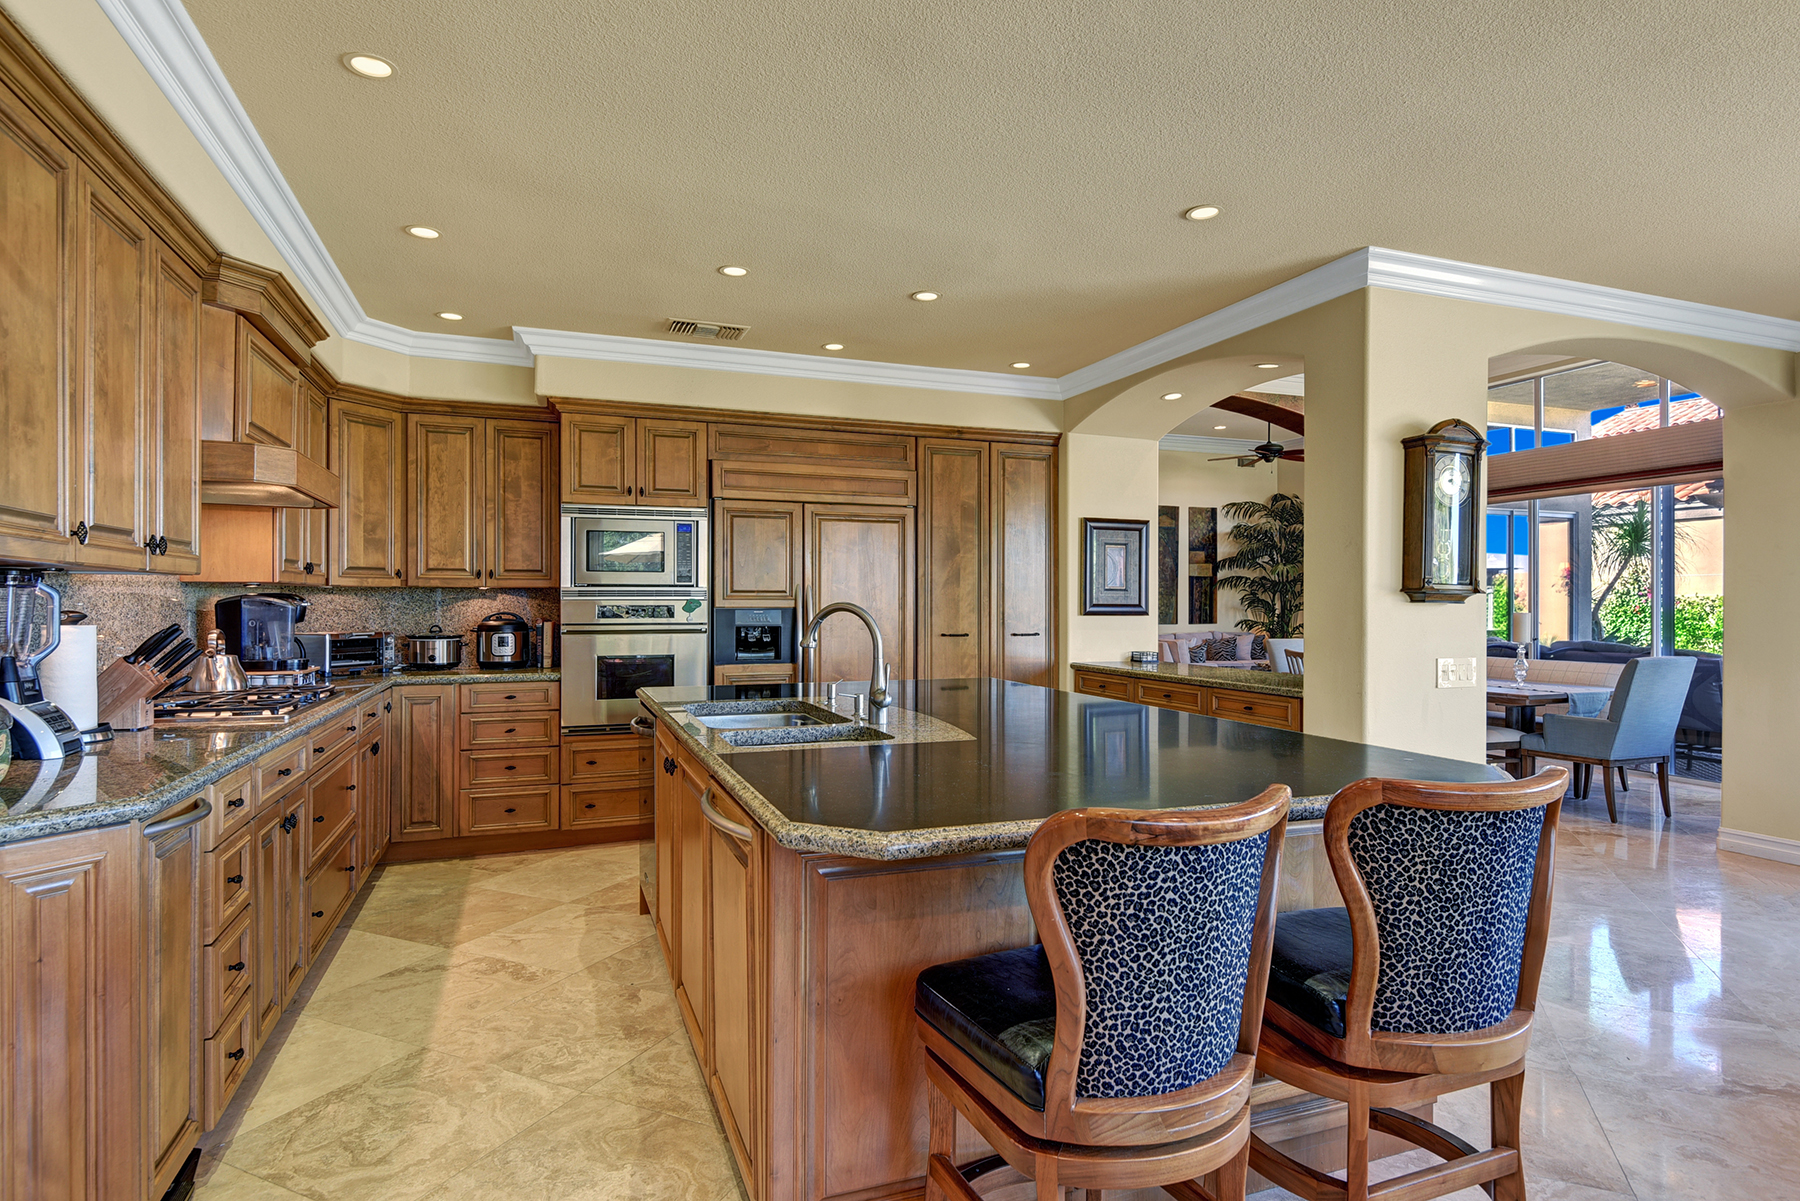 FBA75257-A544-D578-00F6C1EB6B0151A6-KITCHEN THROUGH RS.jpg